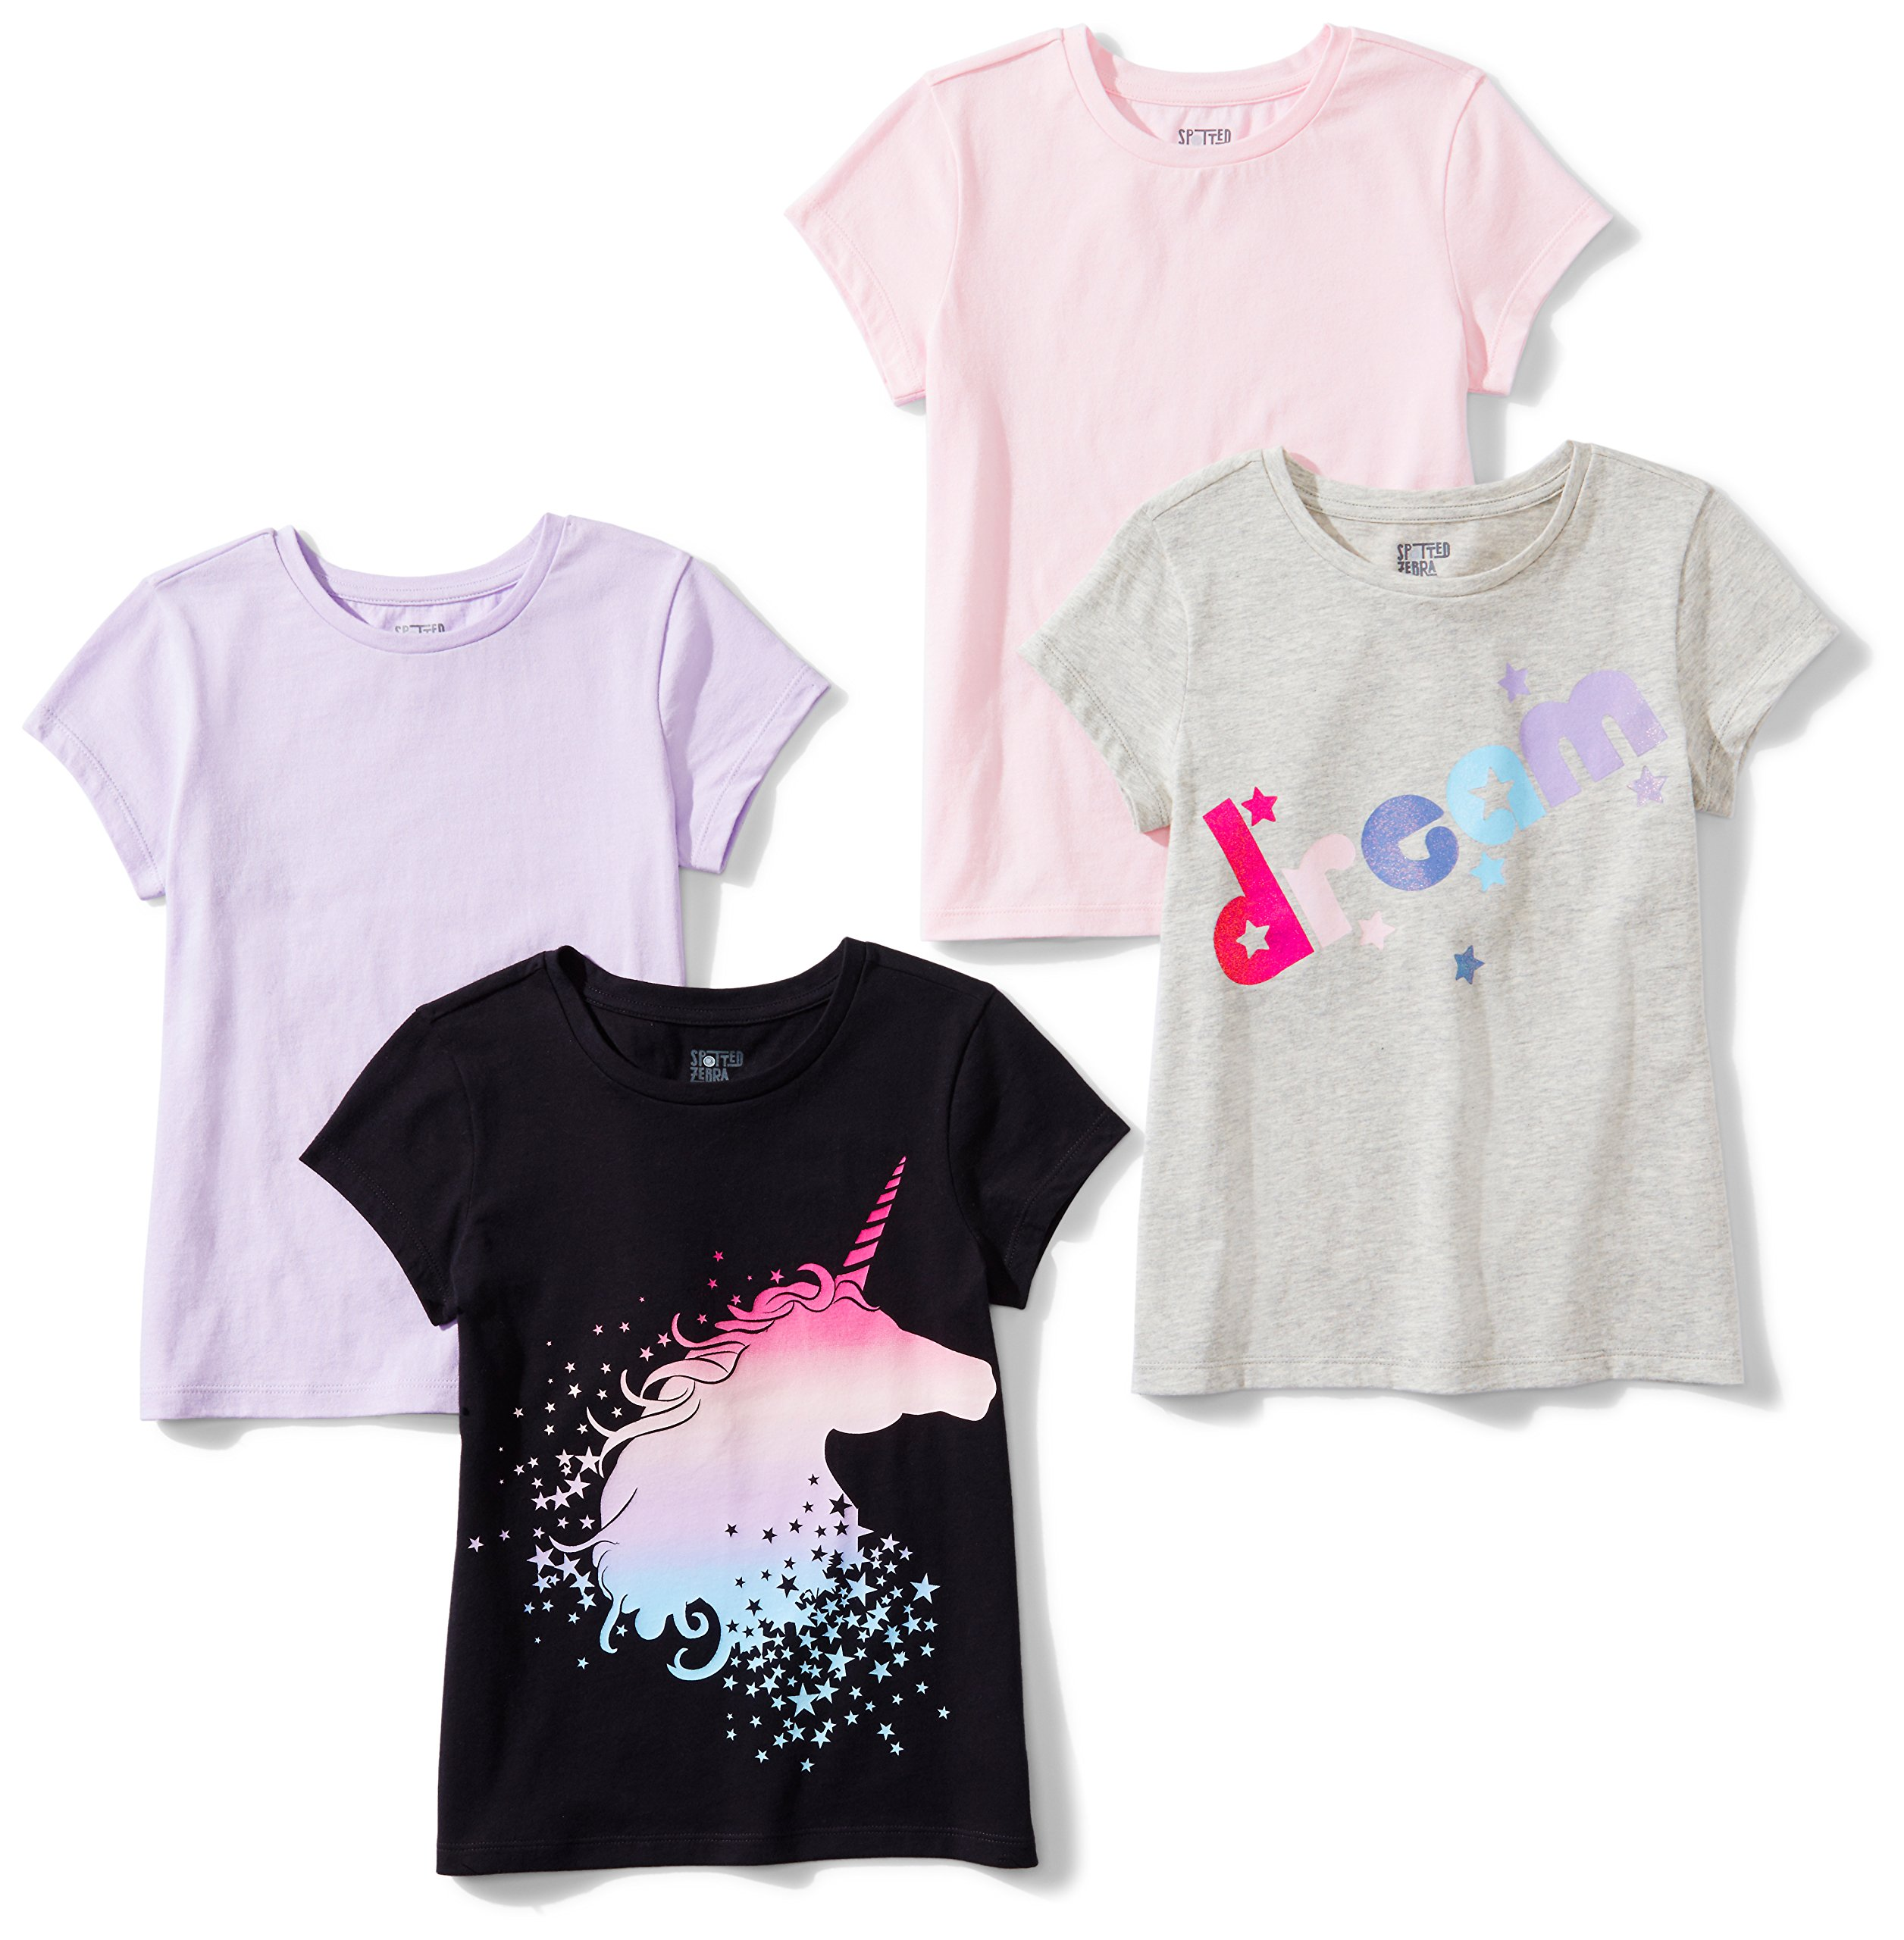 Spotted Zebra Little Girls' 4-Pack Short-Sleeve T-Shirts, Mystic, Small (6-7)